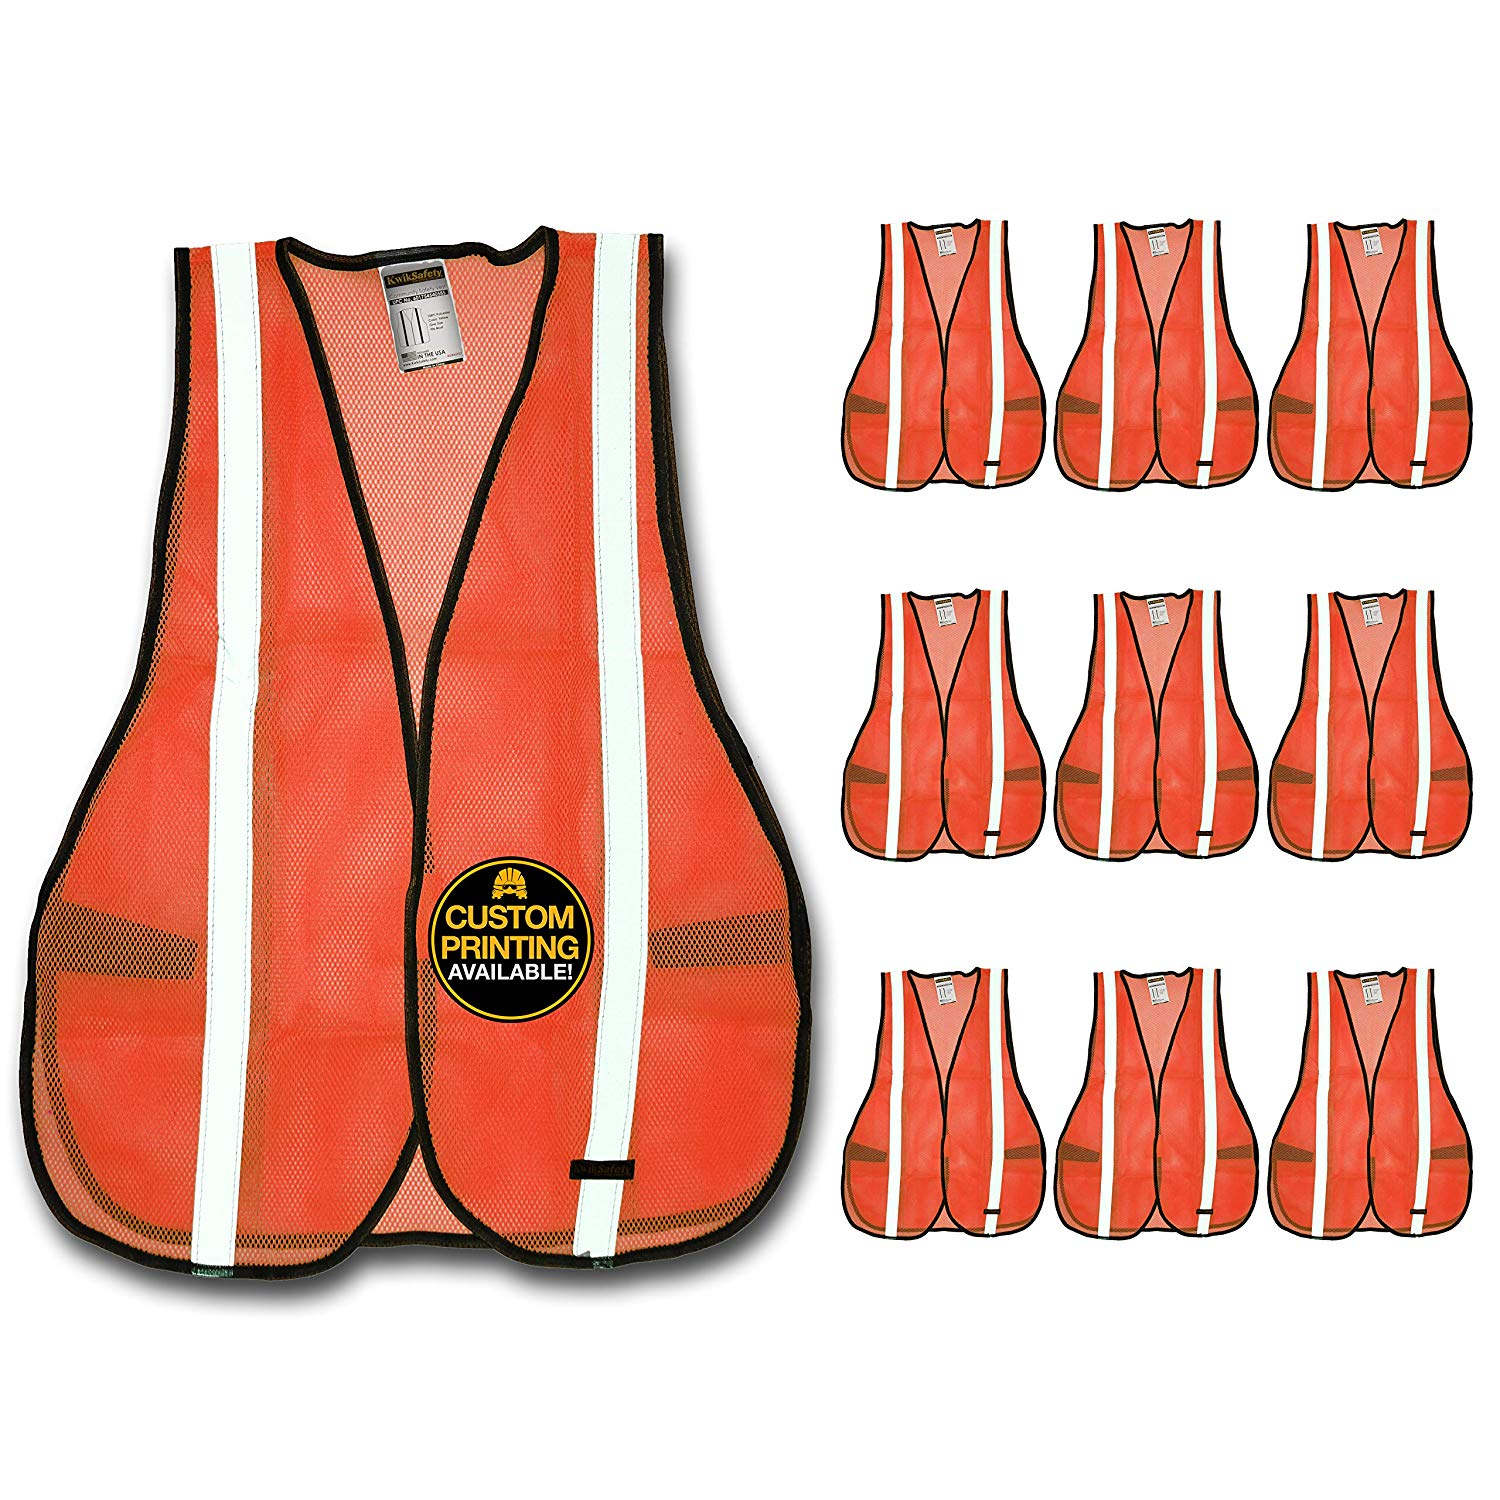 KwikSafety (Charlotte, NC) COMMUNITY ANSI Class Unrated (Snag Free Velcro Closure) Safety Vest (10 PACK) High Visibility Lightweight Reflective Tape Hi-Vis Work Hi-Viz Size One Size Fits Most, Orange